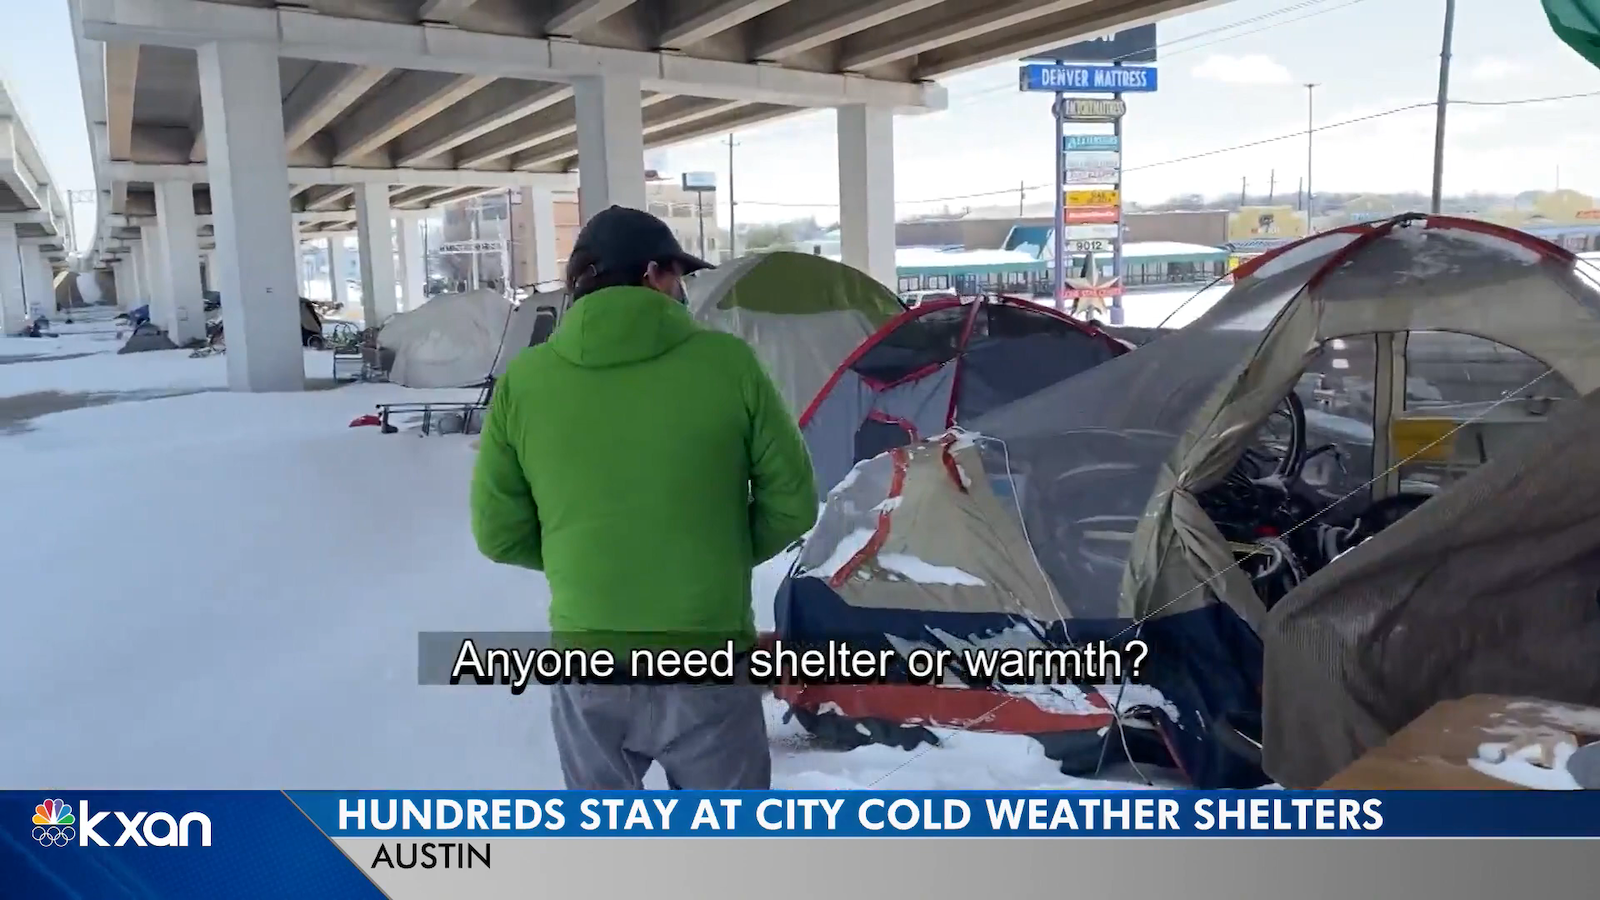 Billy Tweedie, a priest, walks through a group of tents surrounded by snow under an overpass in Austin to see if anyone is left staying out in the cold.